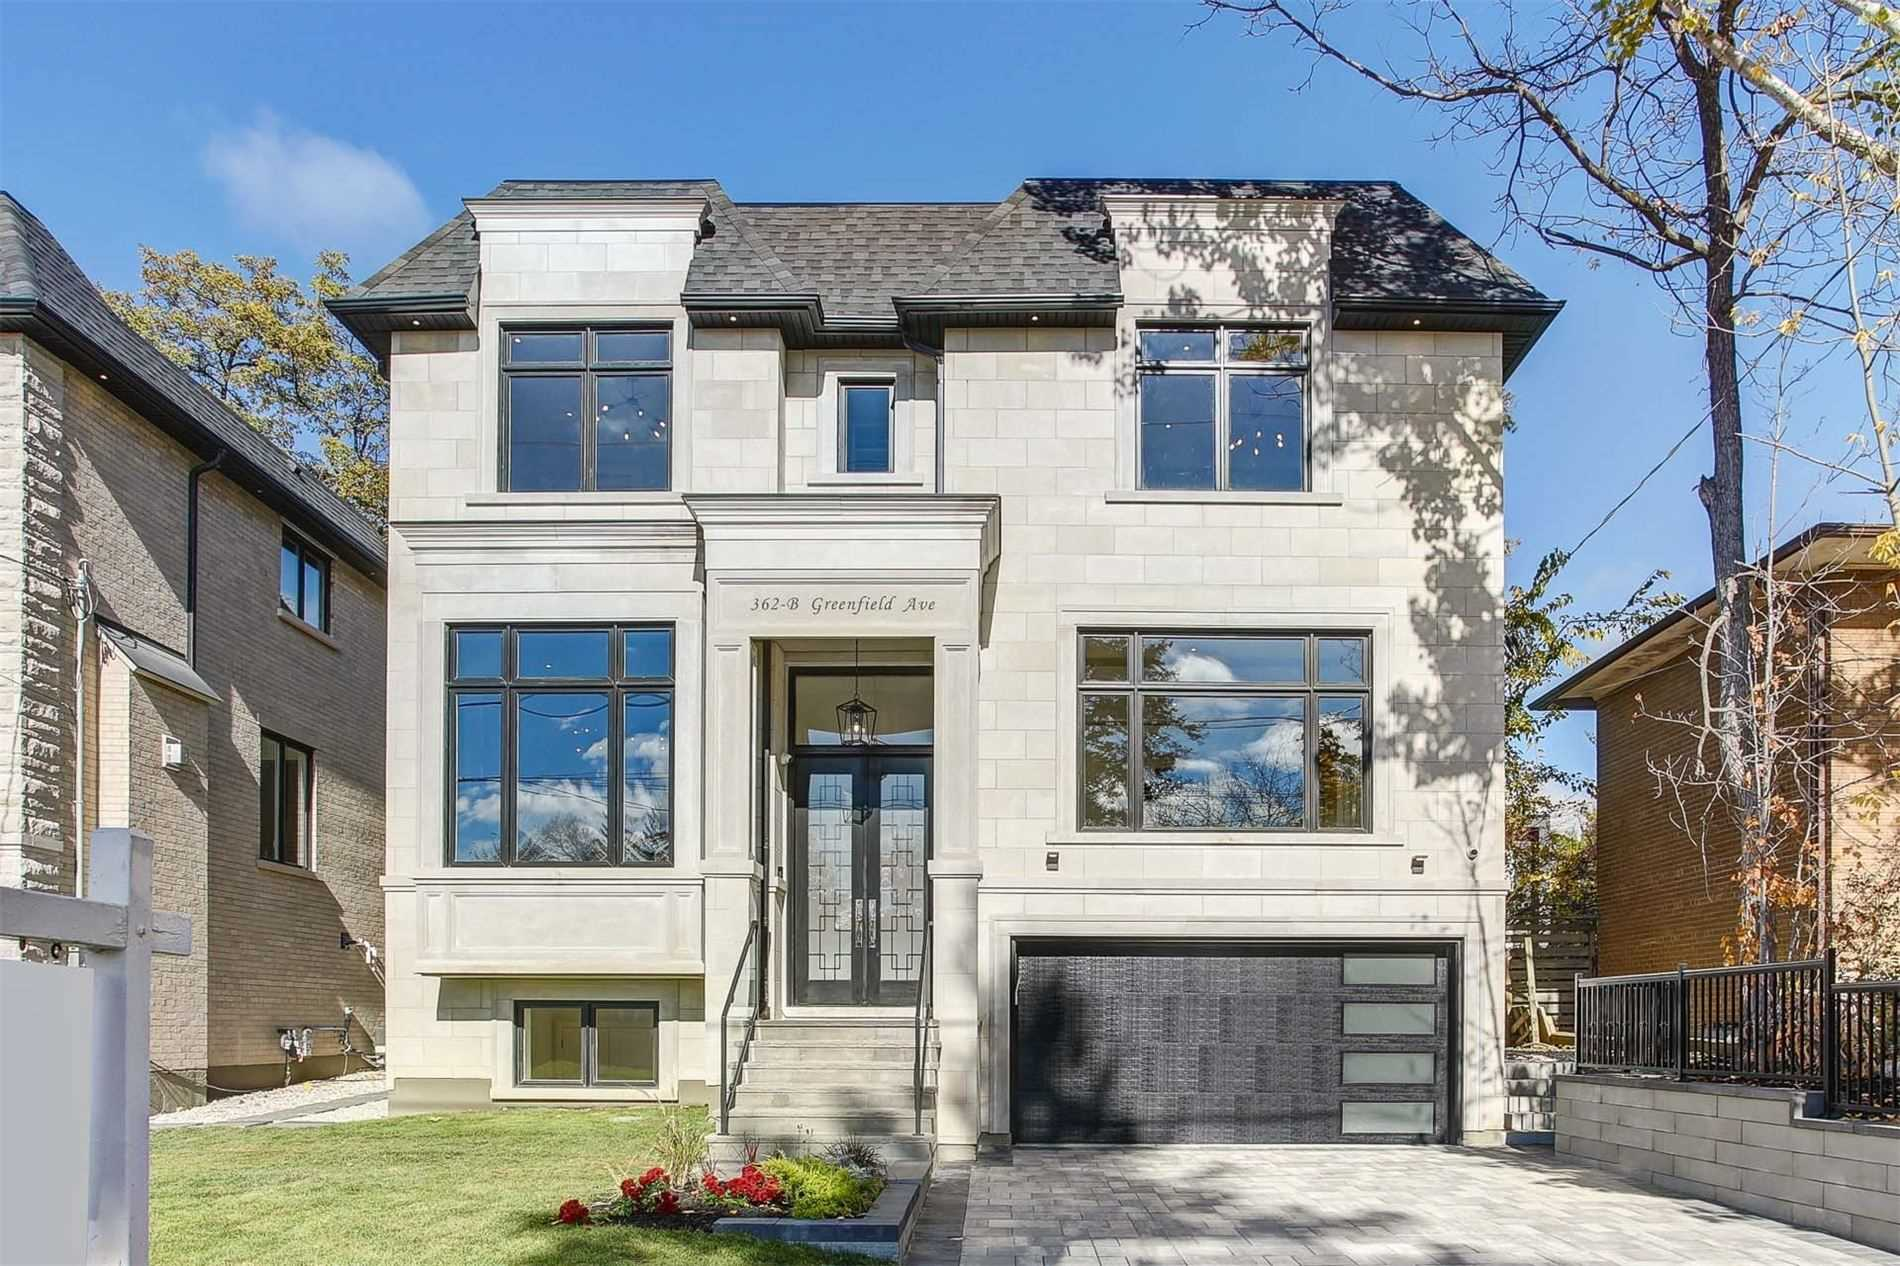 362B Greenfield Ave, Toronto, Ontario M2N3E8, 4 Bedrooms Bedrooms, 10 Rooms Rooms,6 BathroomsBathrooms,Detached,For Sale,Greenfield,C4975243